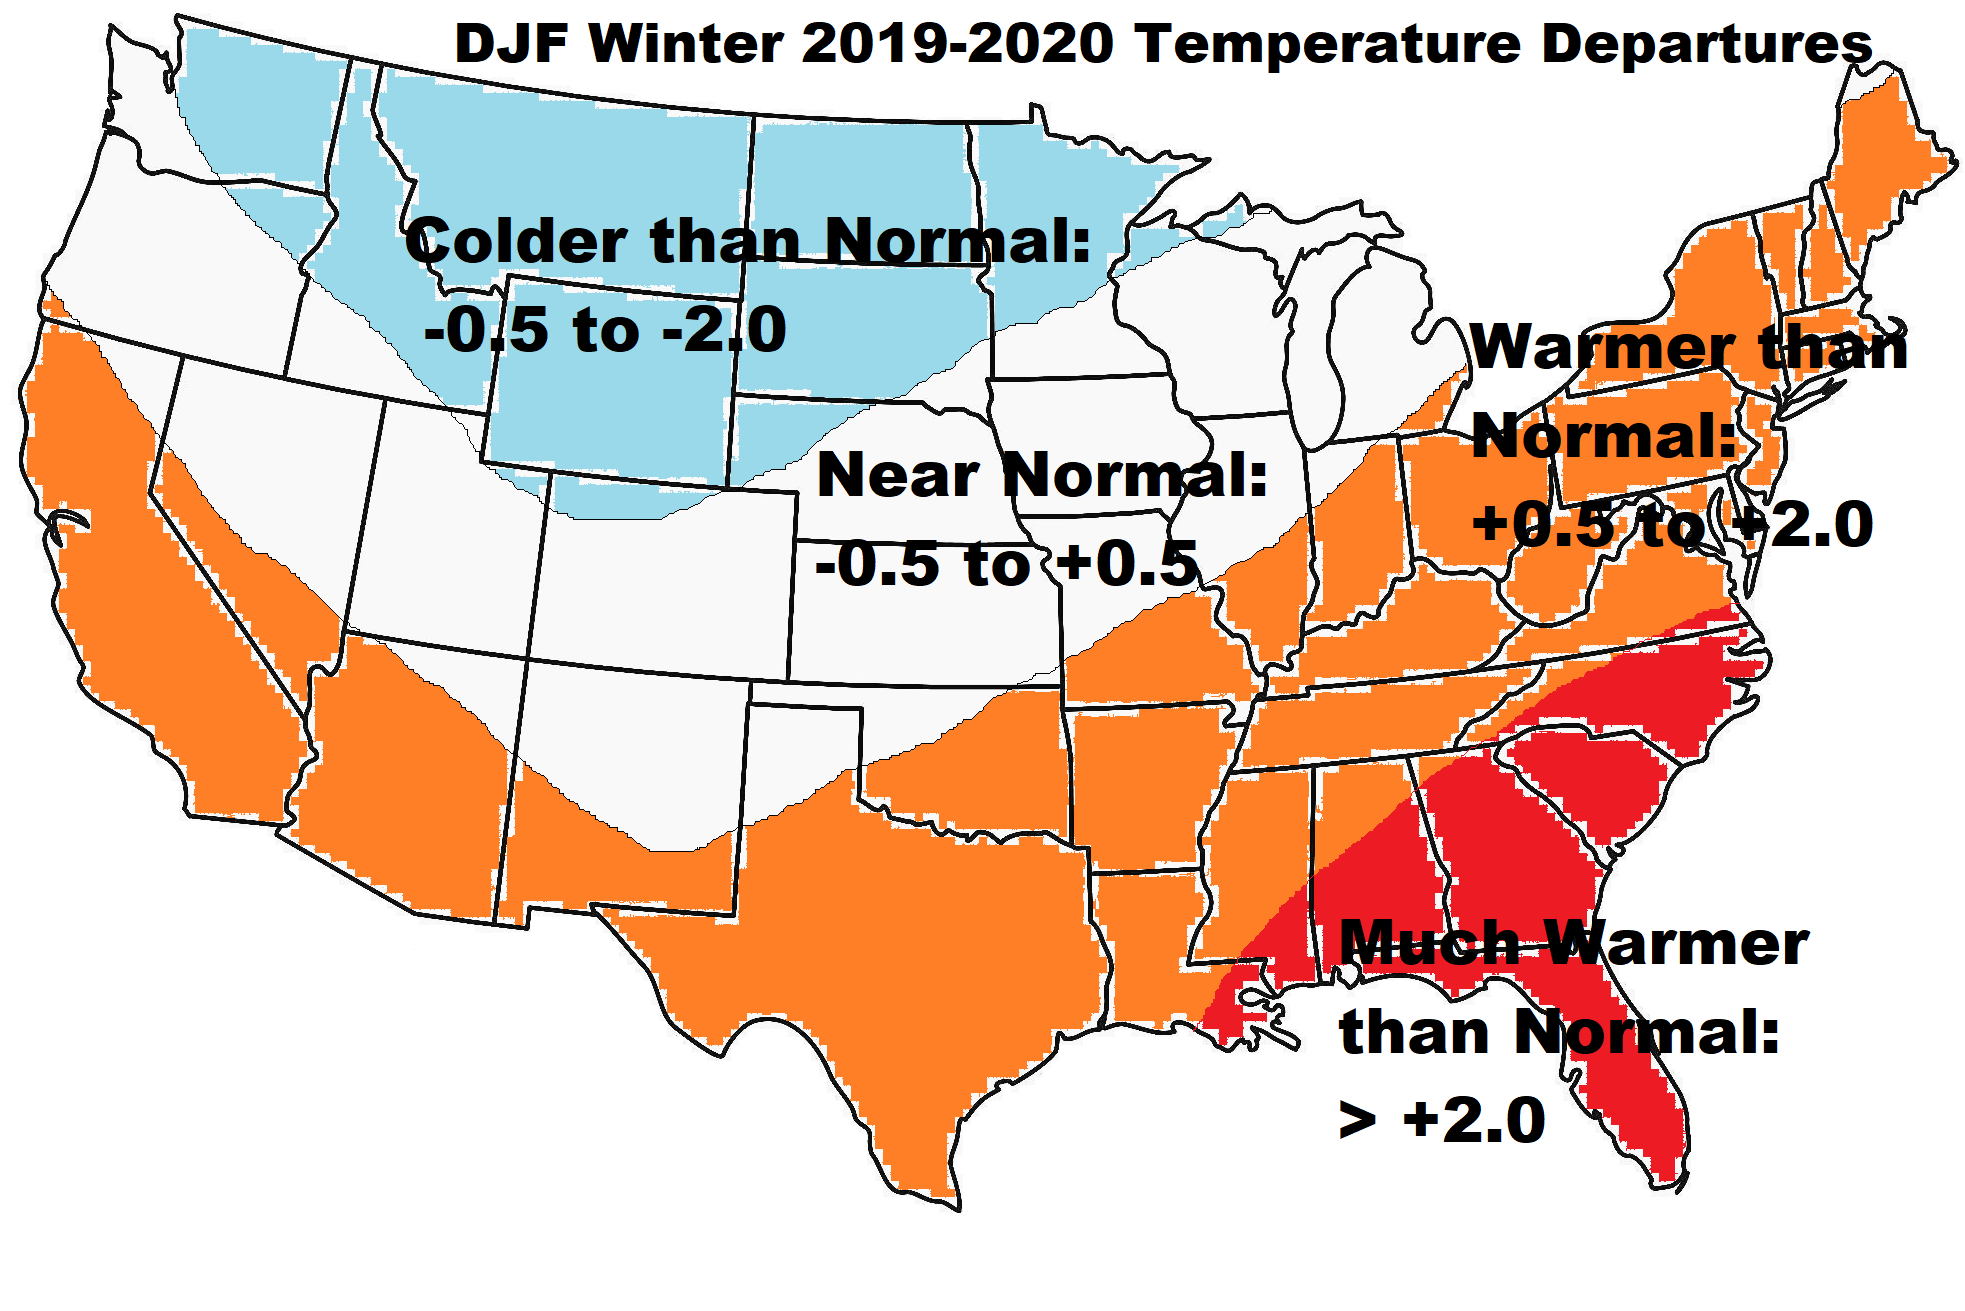 DJF WINTER TEMPS MAP